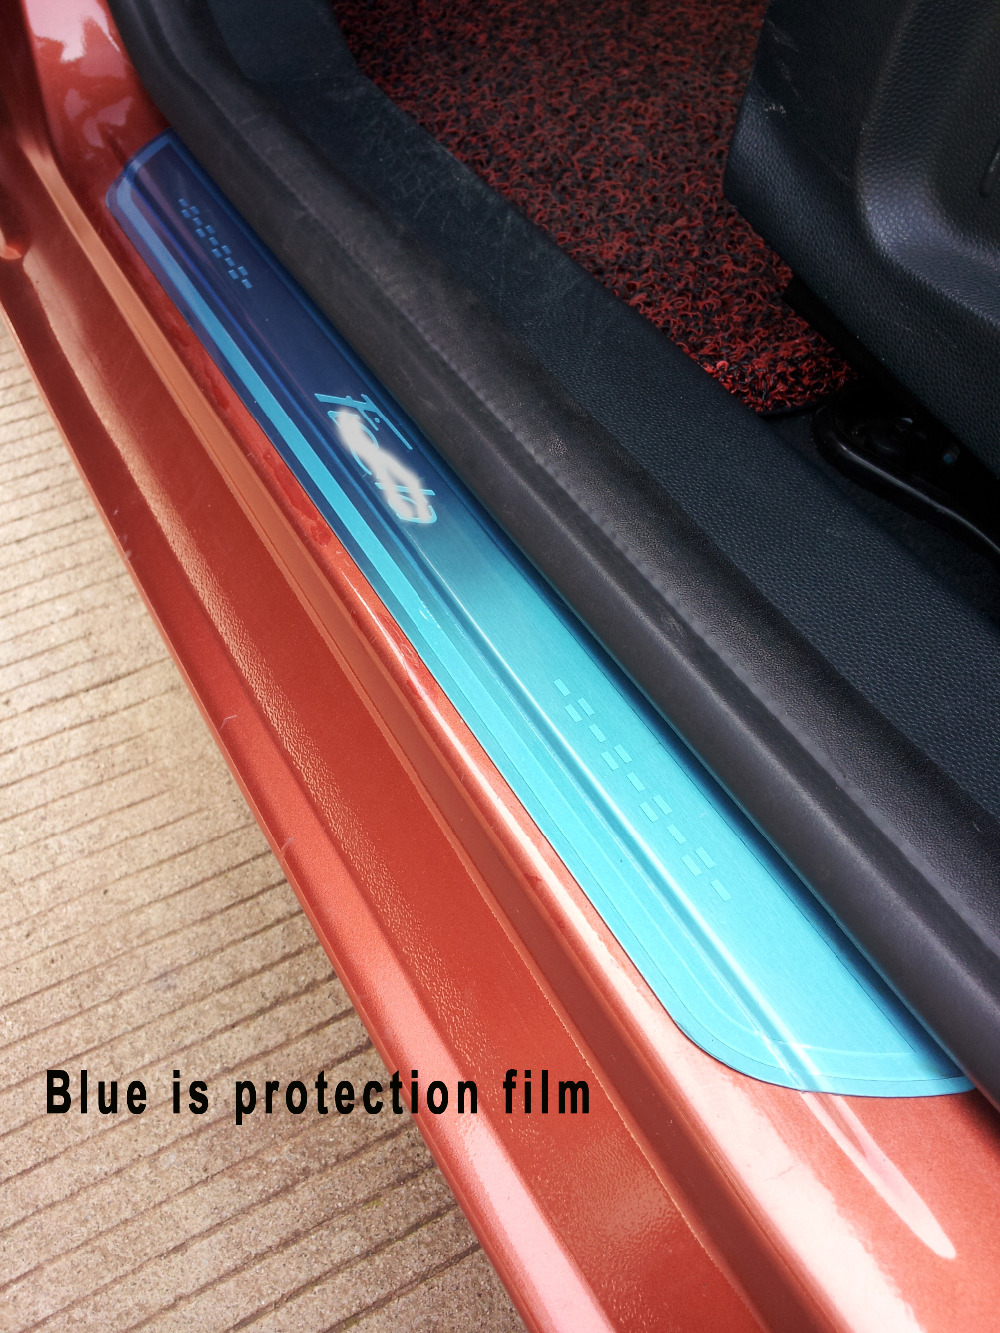 Chrome stainless steel threshold scuff plate door sill covers for ford focus fiesta 2012 2013 2014